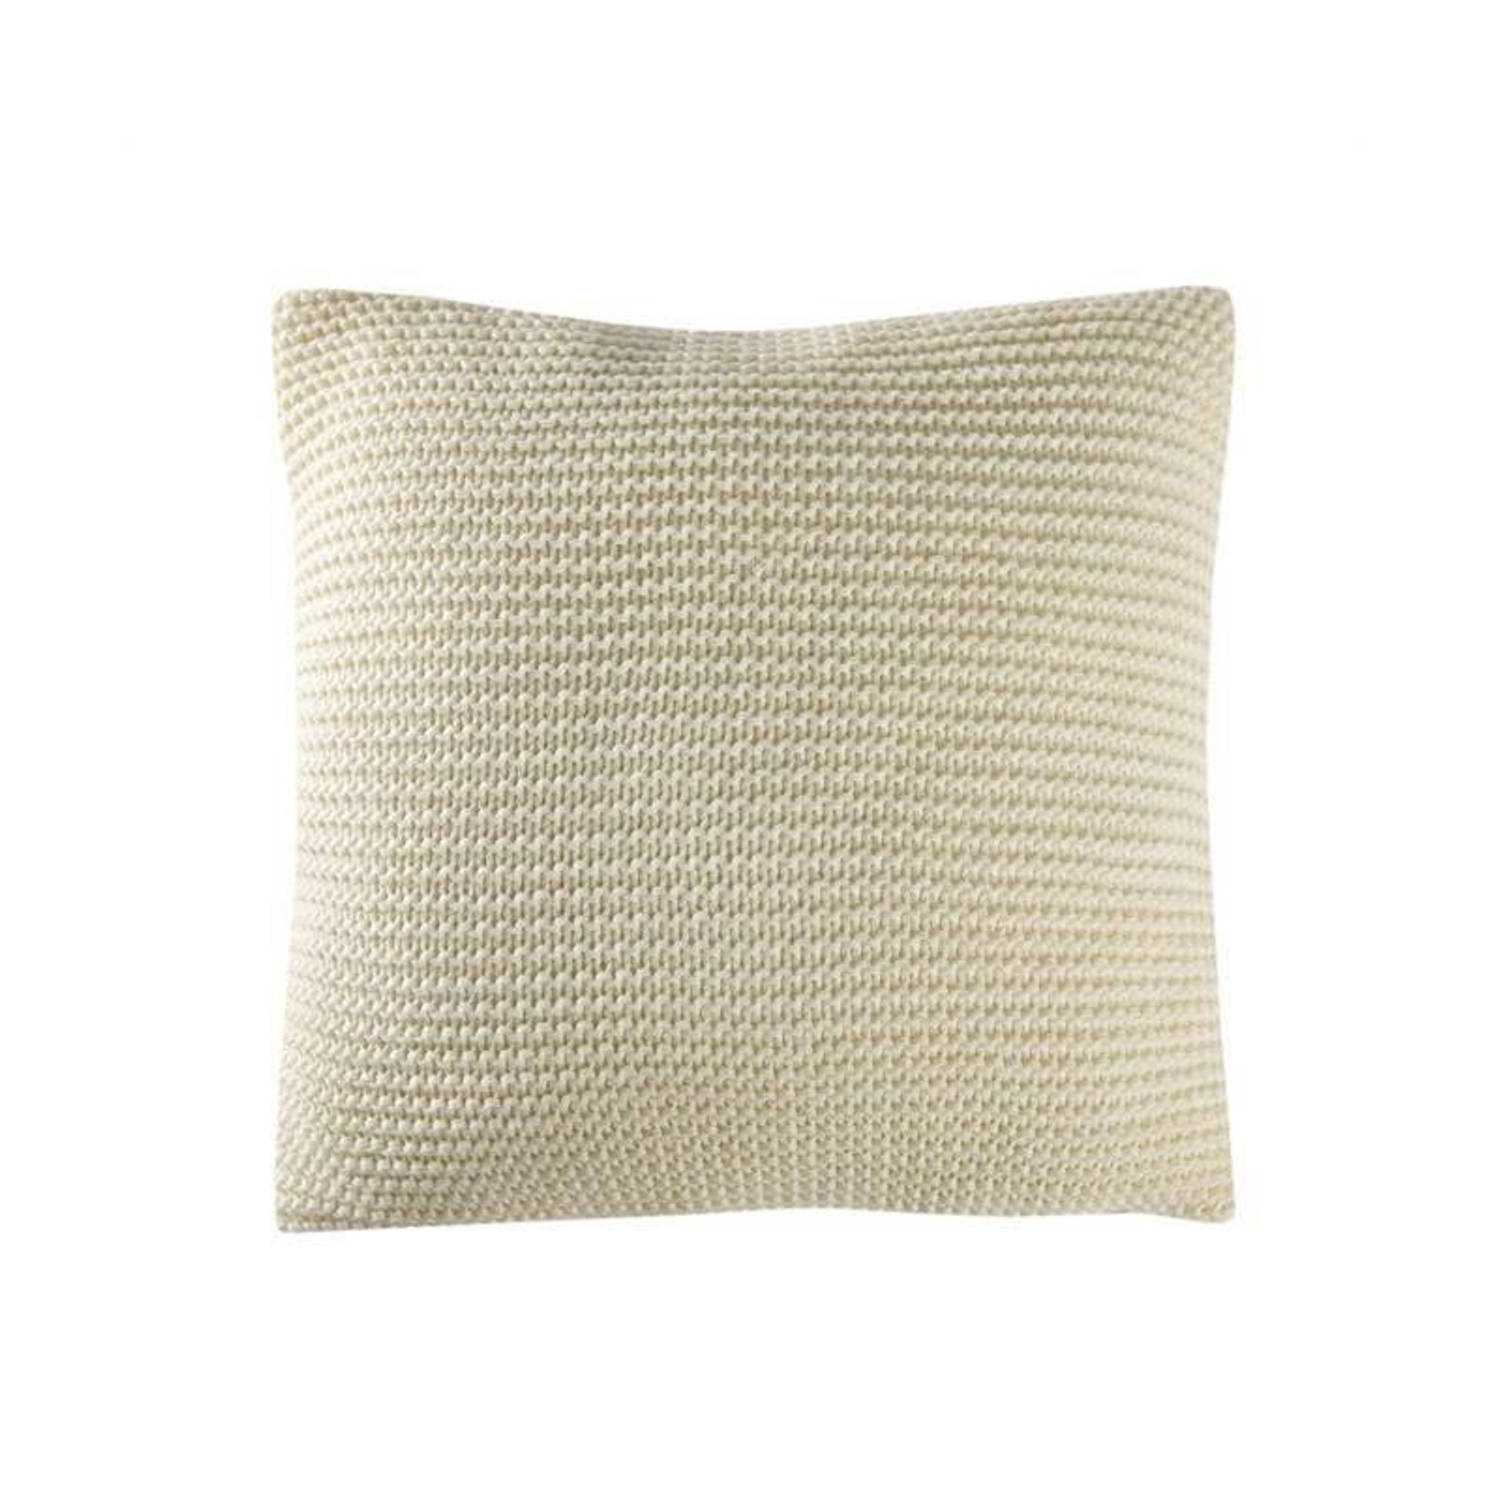 Damai Vancouver kussenhoes - 100% acryl - 45x45 cm - Wit, Wool white